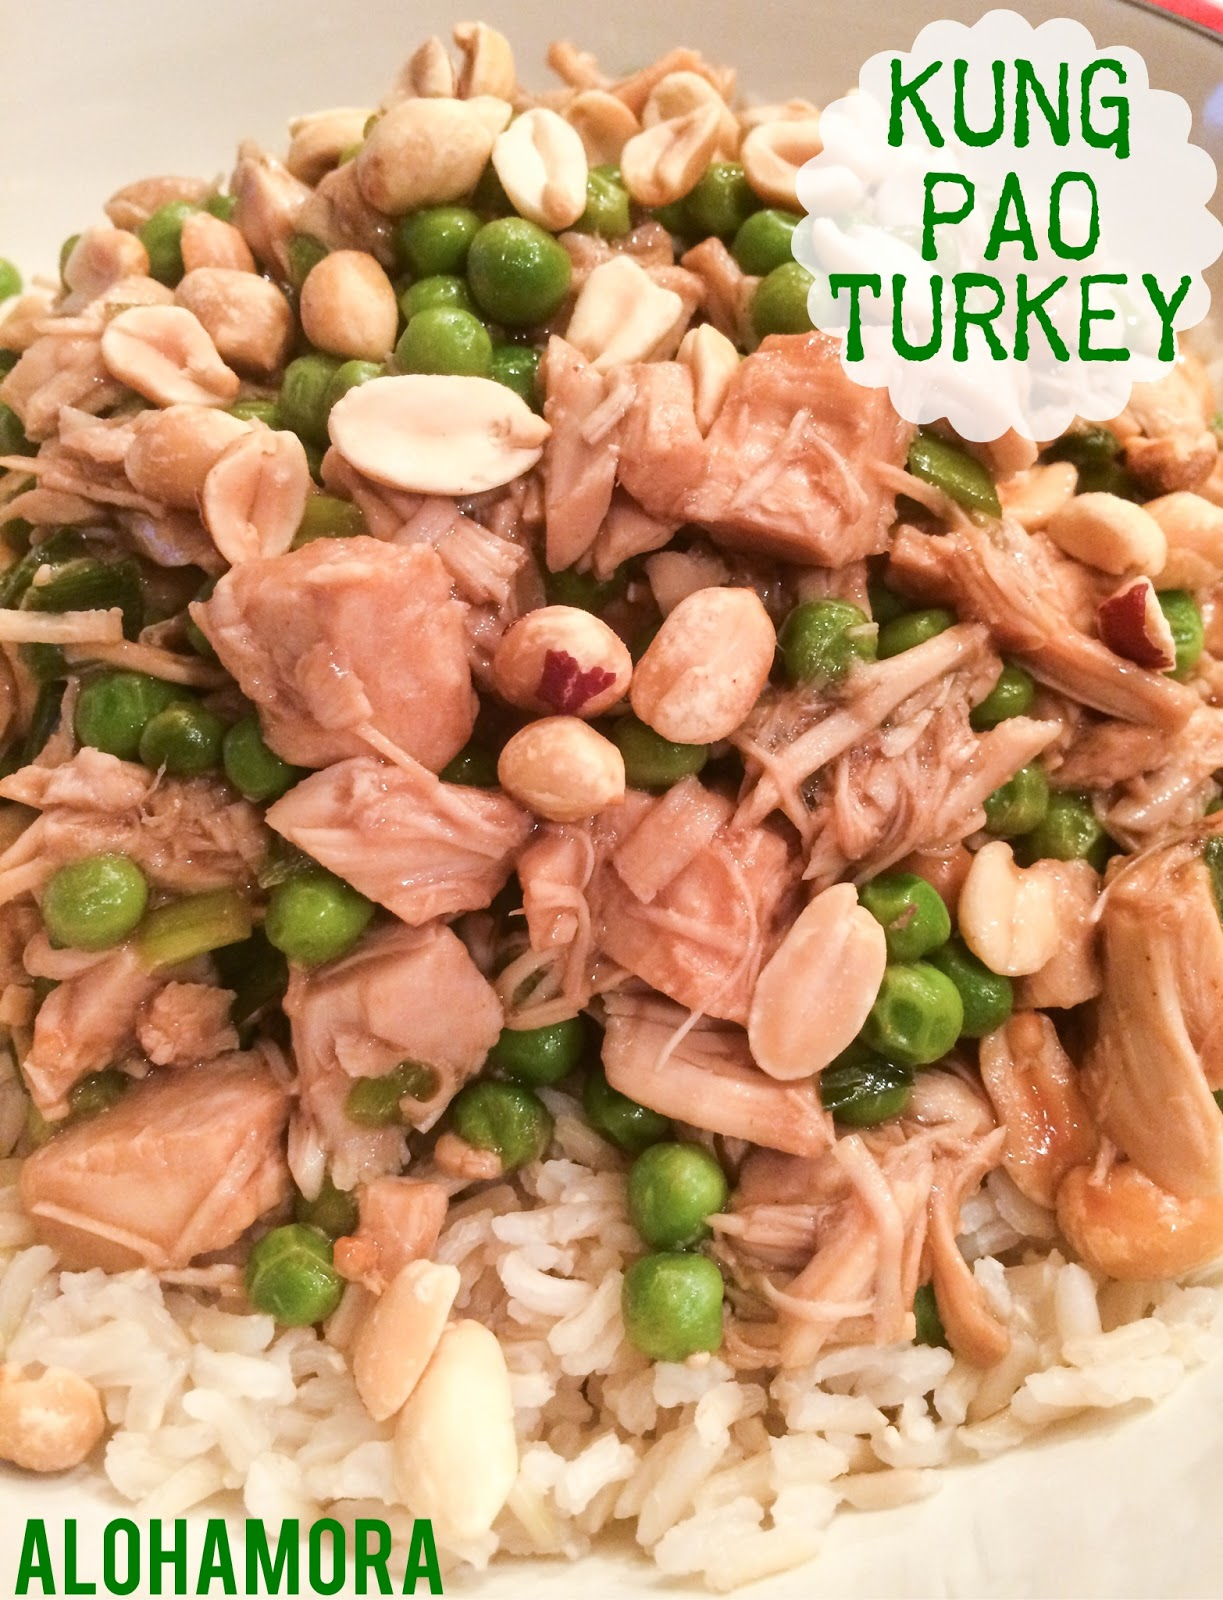 Kung Pao Turkey- a delicious and healthy stir-fry that uses your leftover turkey from Thanksgiving.  You could use chicken/rotisserie as well.  Delicious flavor, not too spicy, and a kid friendly dinner that can be made in 30 minutes.  Alohamora Open a Book http://alohamoraopenabook.blogspot.com/